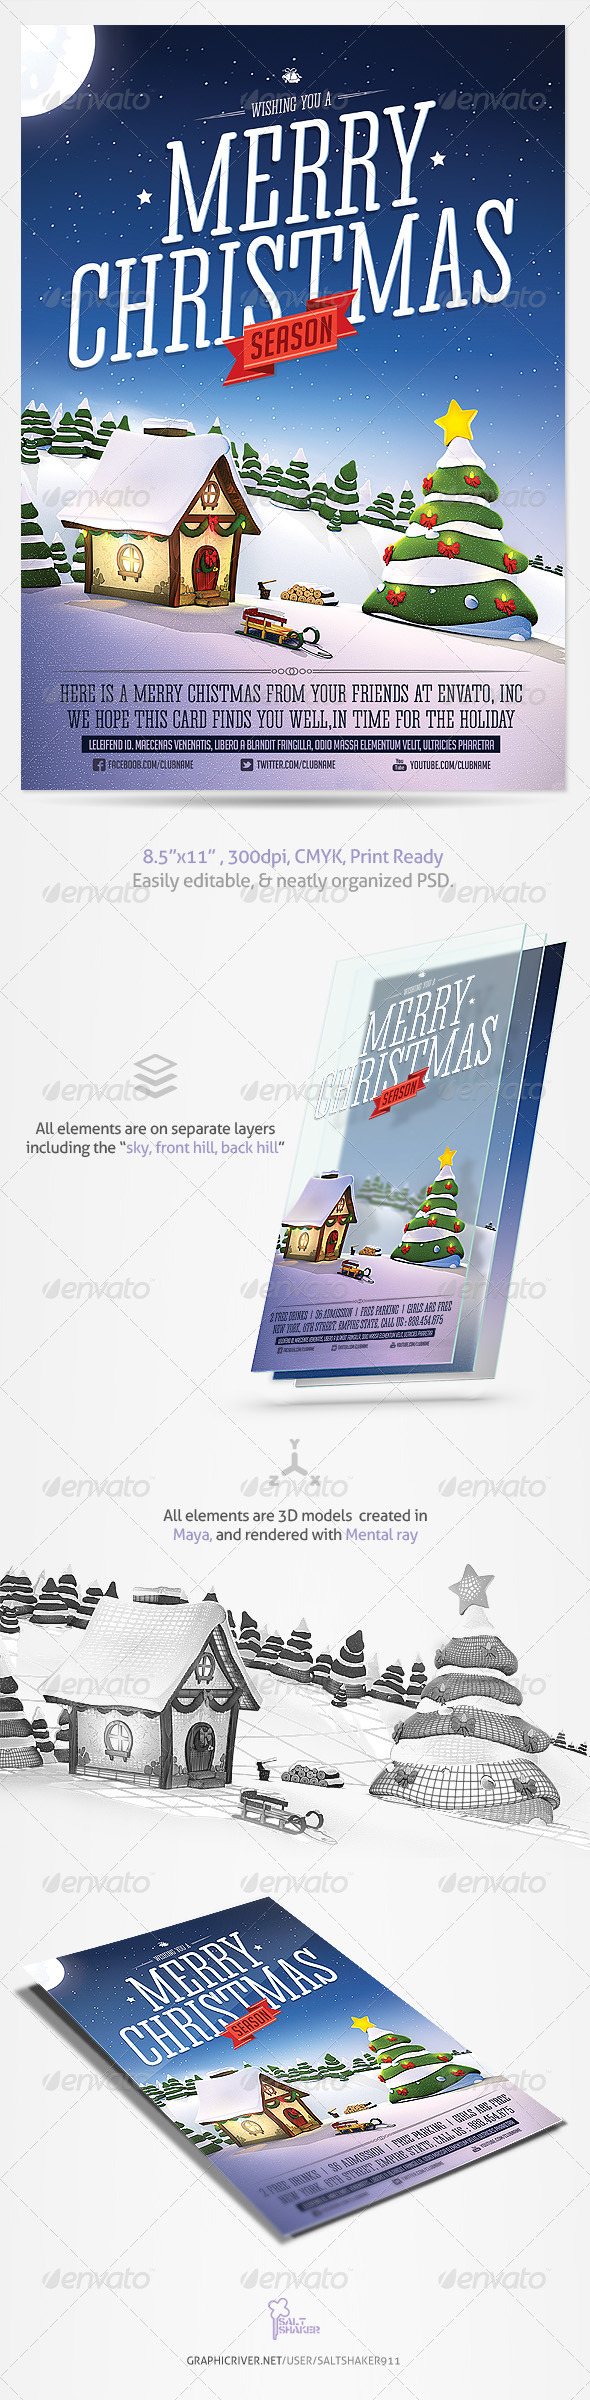 Christmas Greetings Card Template - Holidays Events